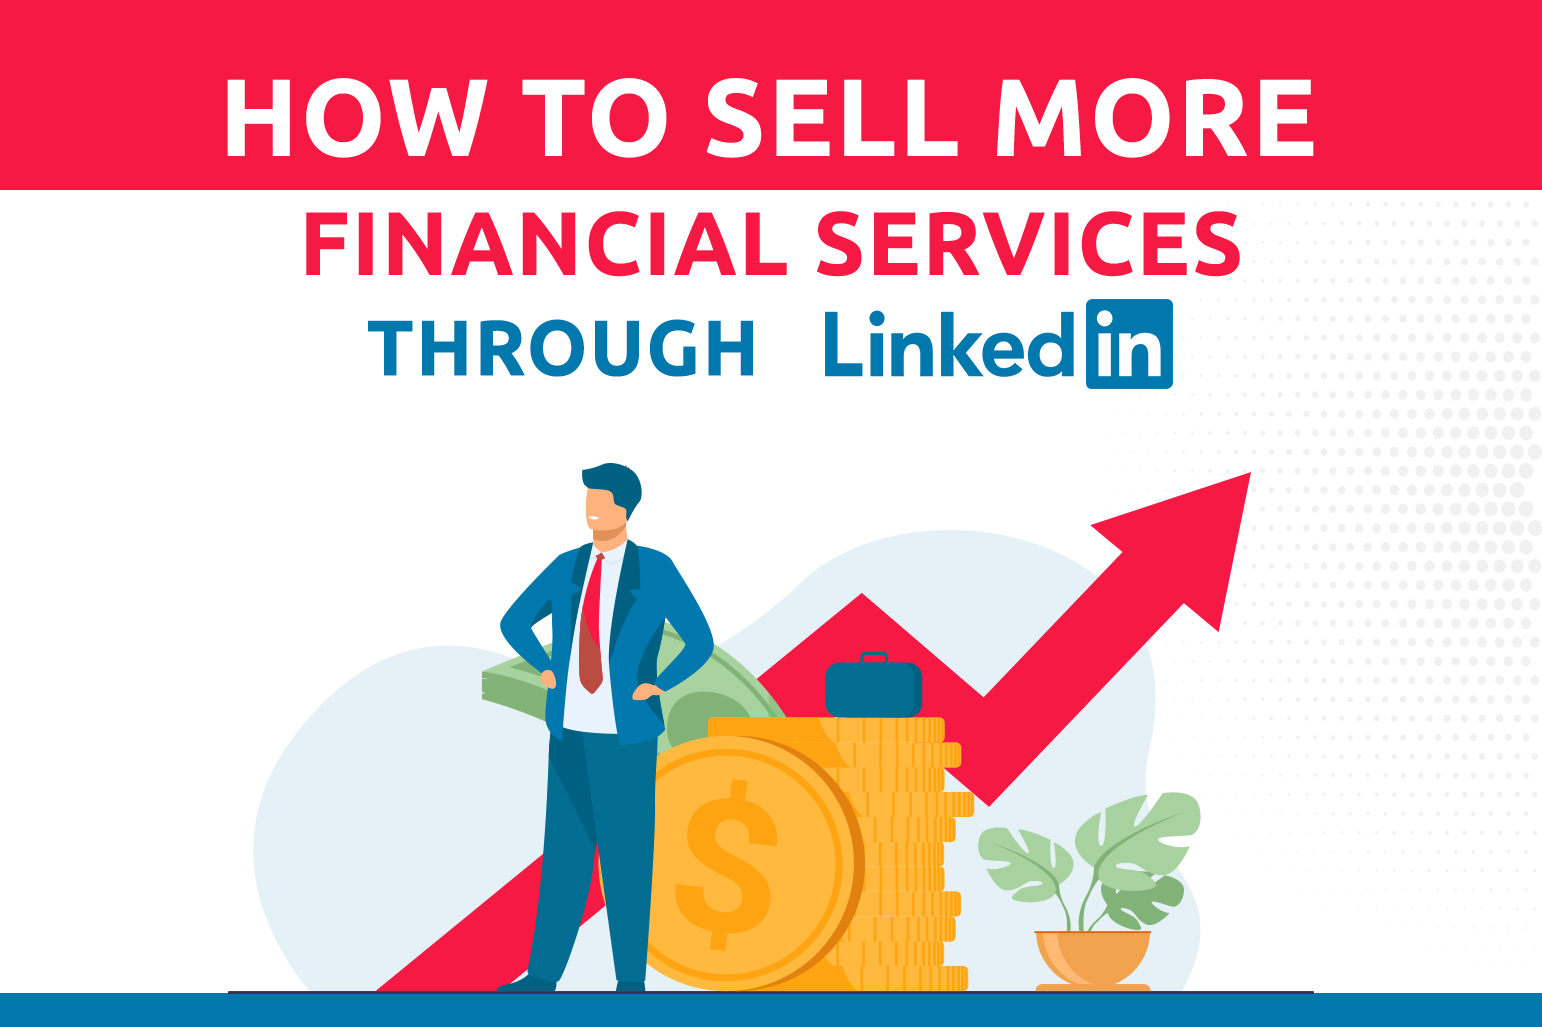 How To Sell More Financial Services Through LinkedIn